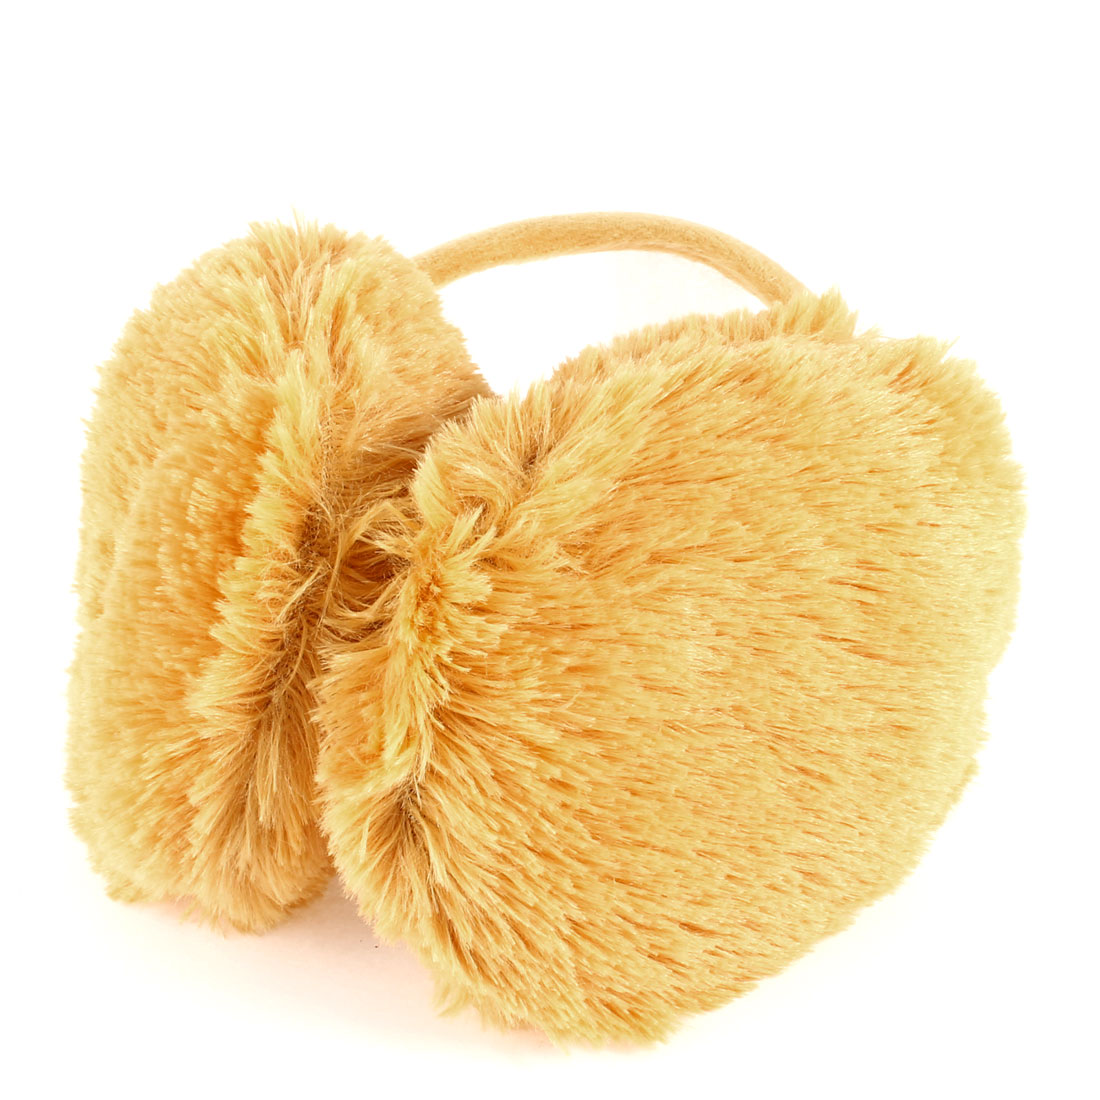 Kids Plush Ear Warmers Muffs Fluffy Ear Covers Earmuffs Yellow